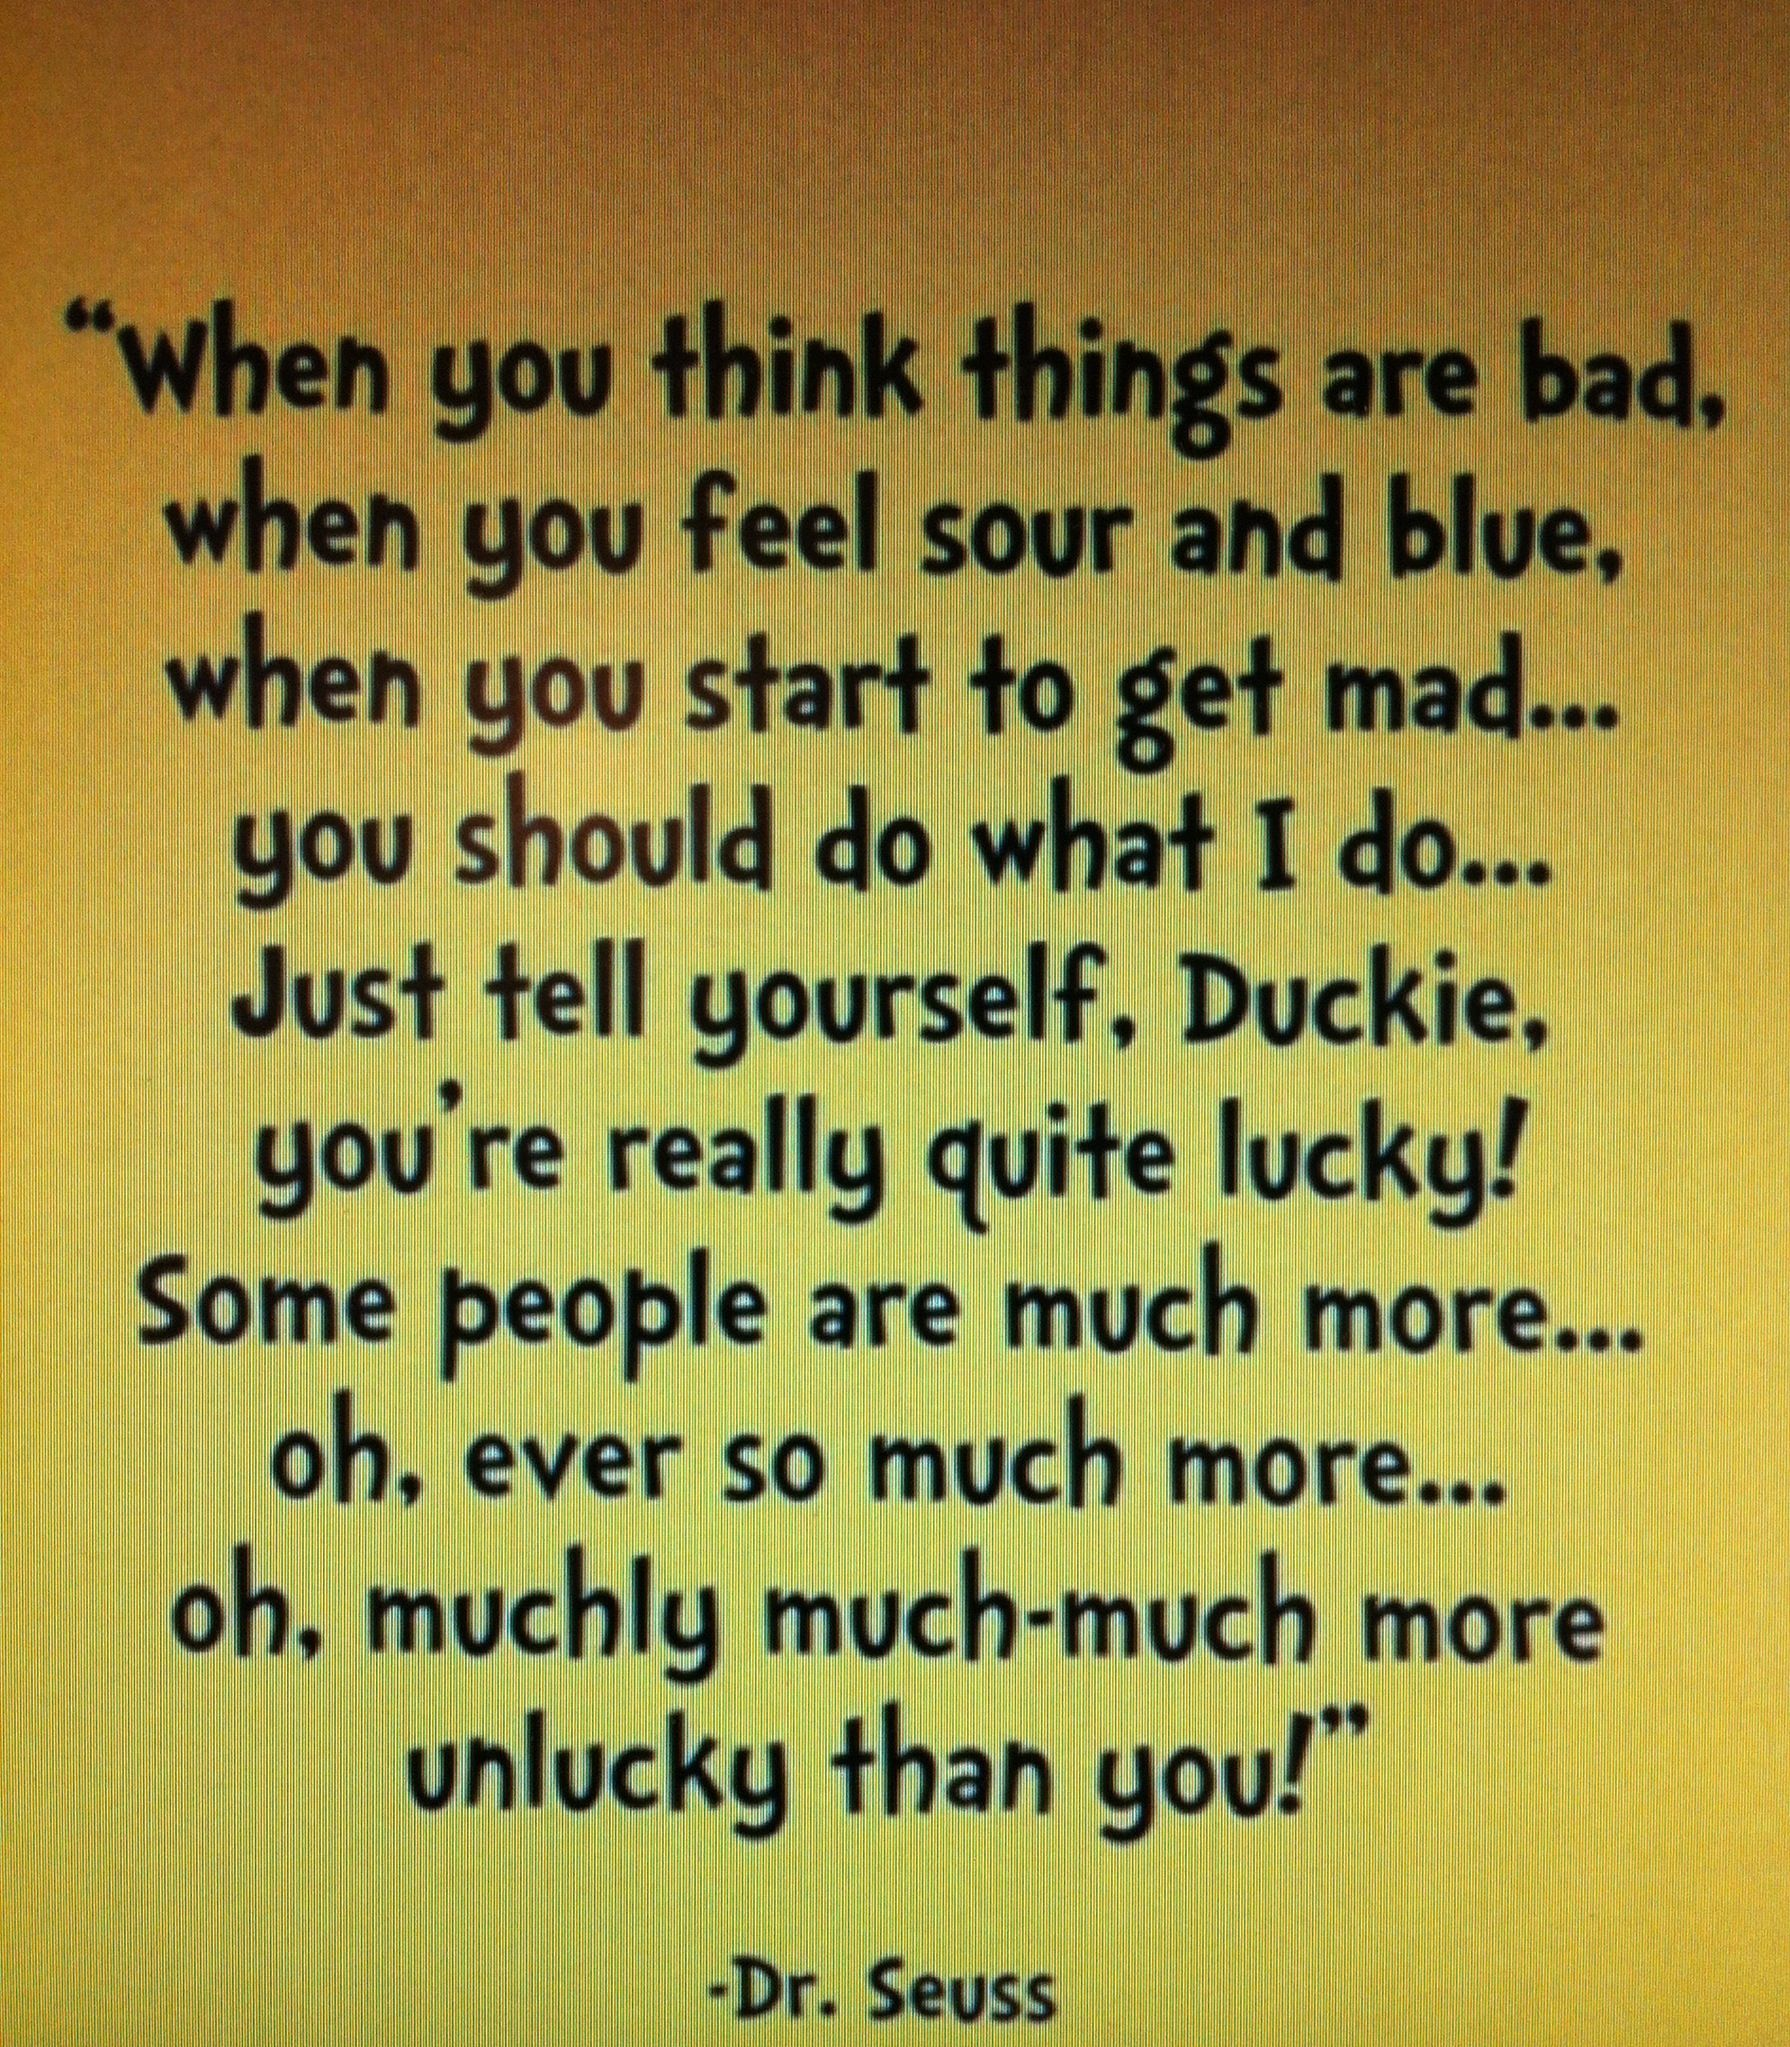 Pin by Sammy Johnson on Quotes | Pinterest | Happiness, Wisdom and ...